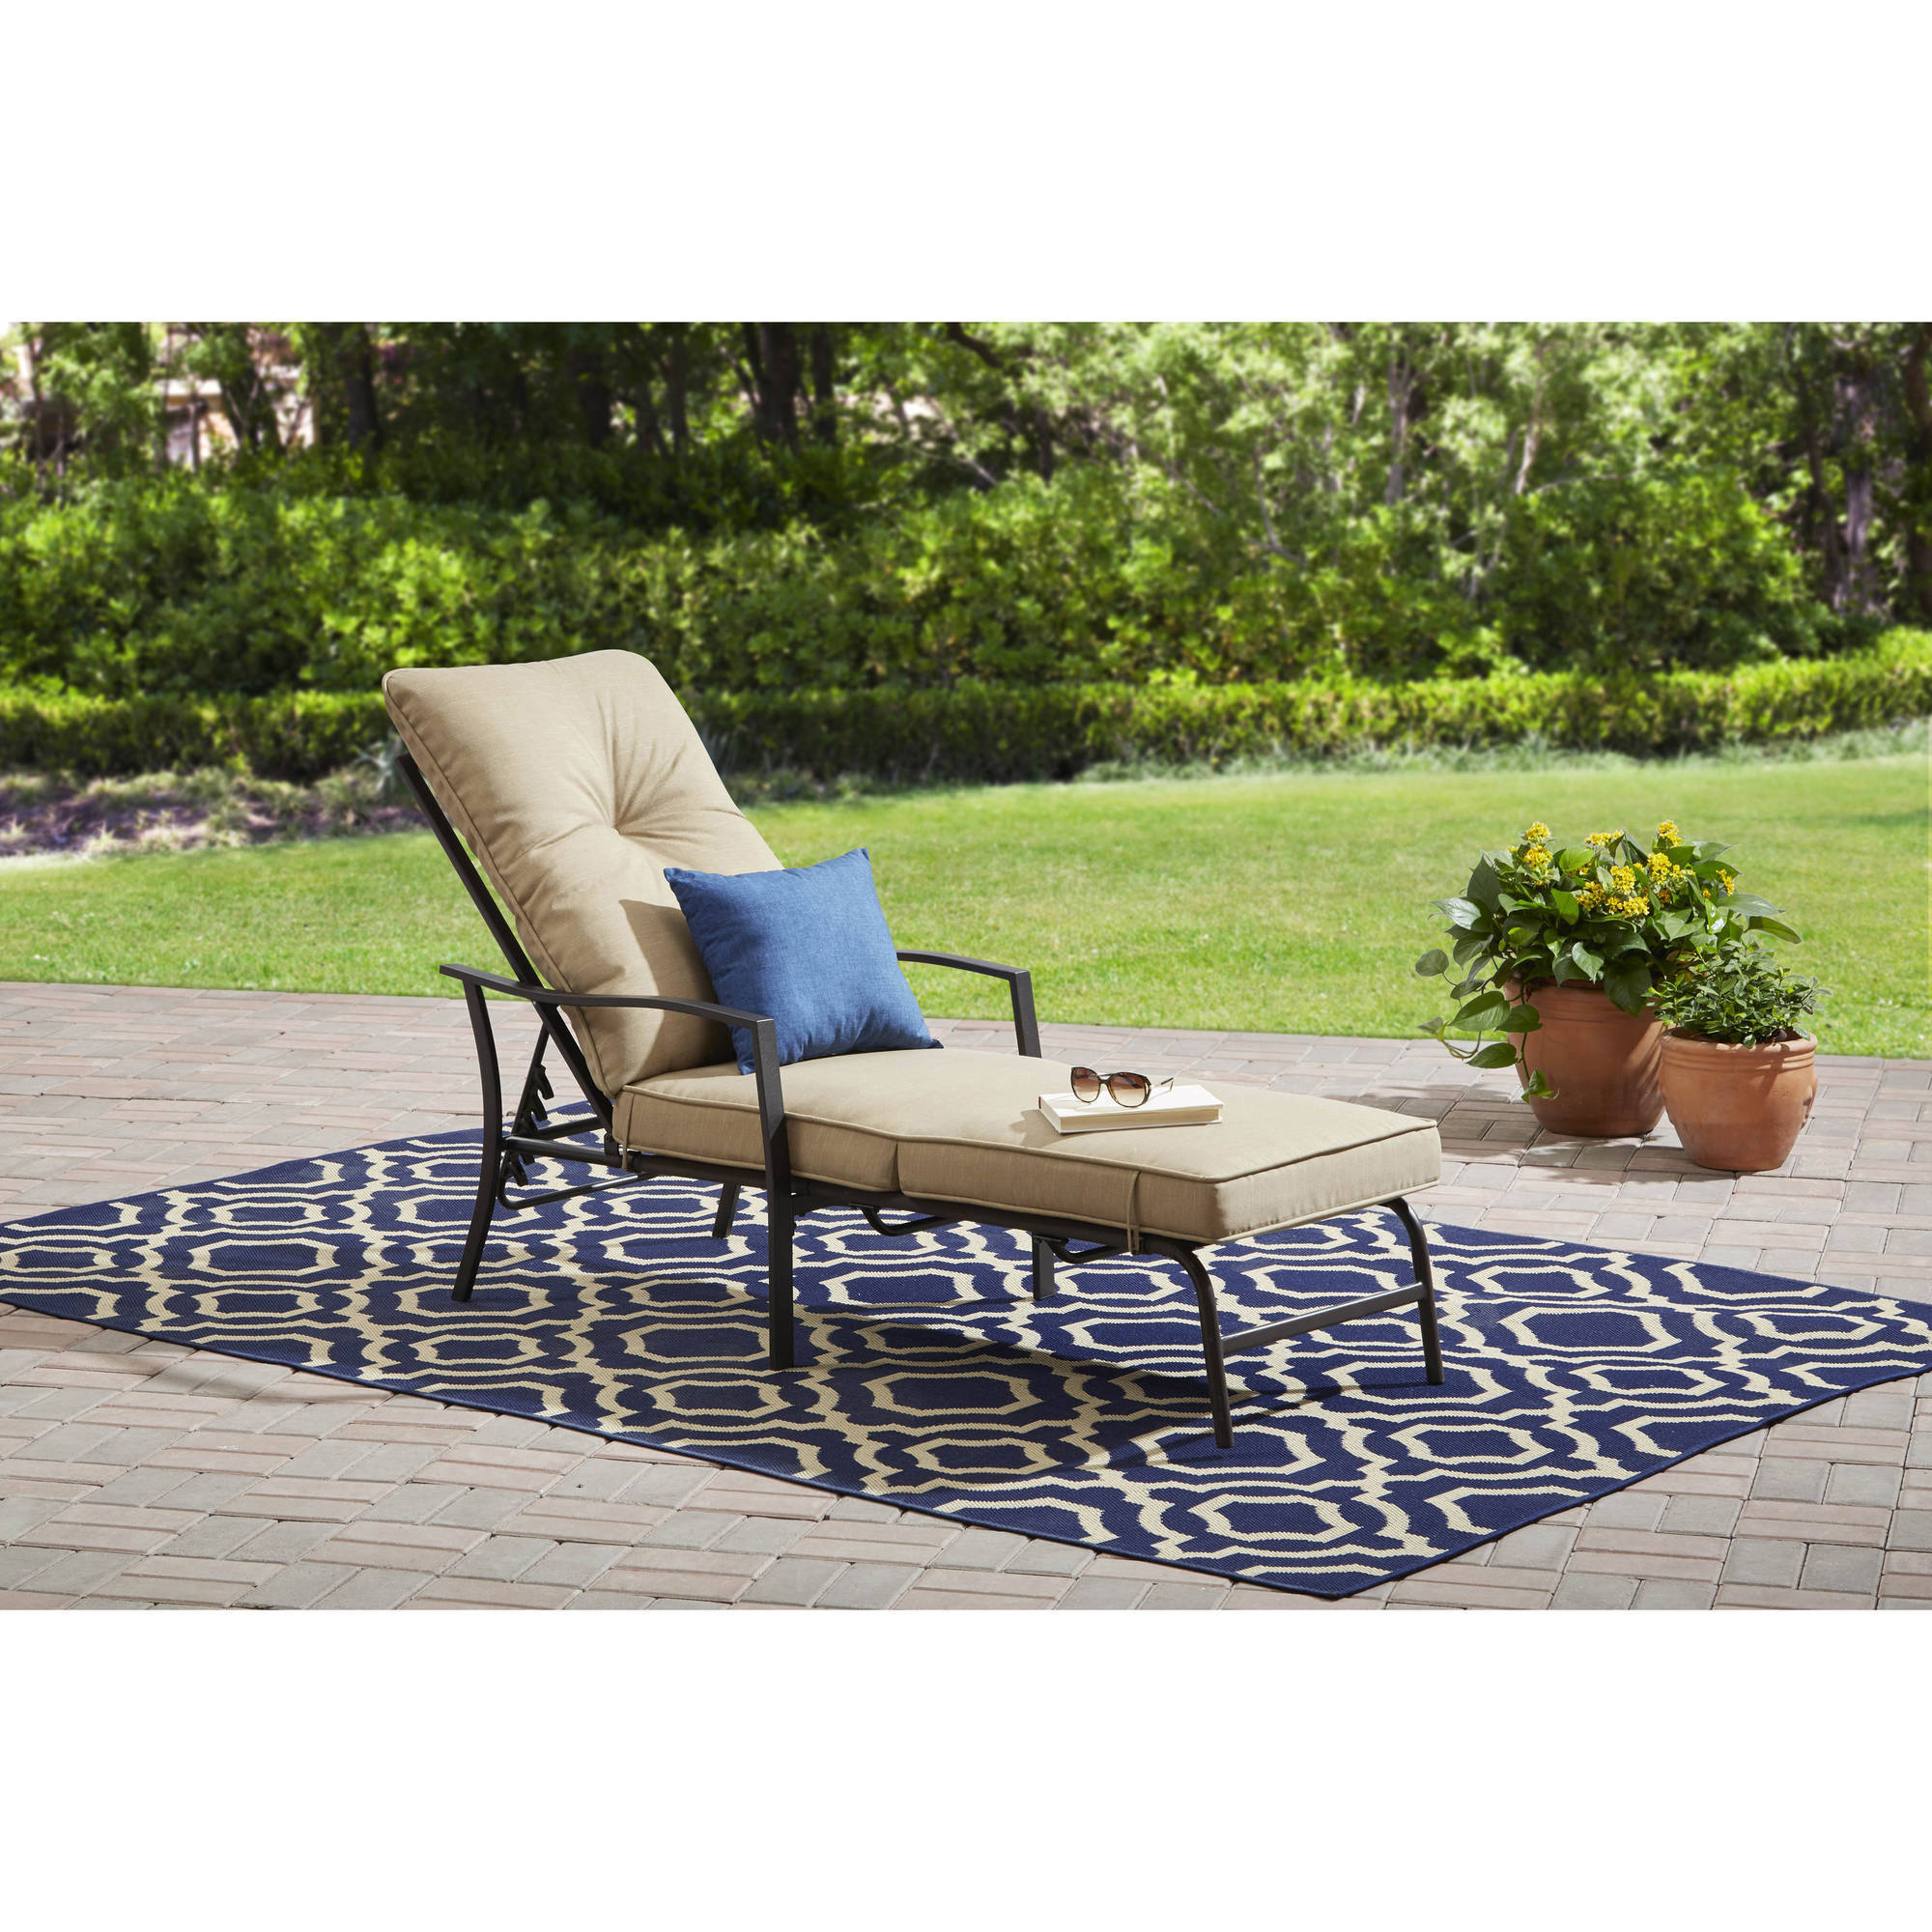 Mainstays Forest Hills Outdoor Chaise Lounge, Espresso Frame